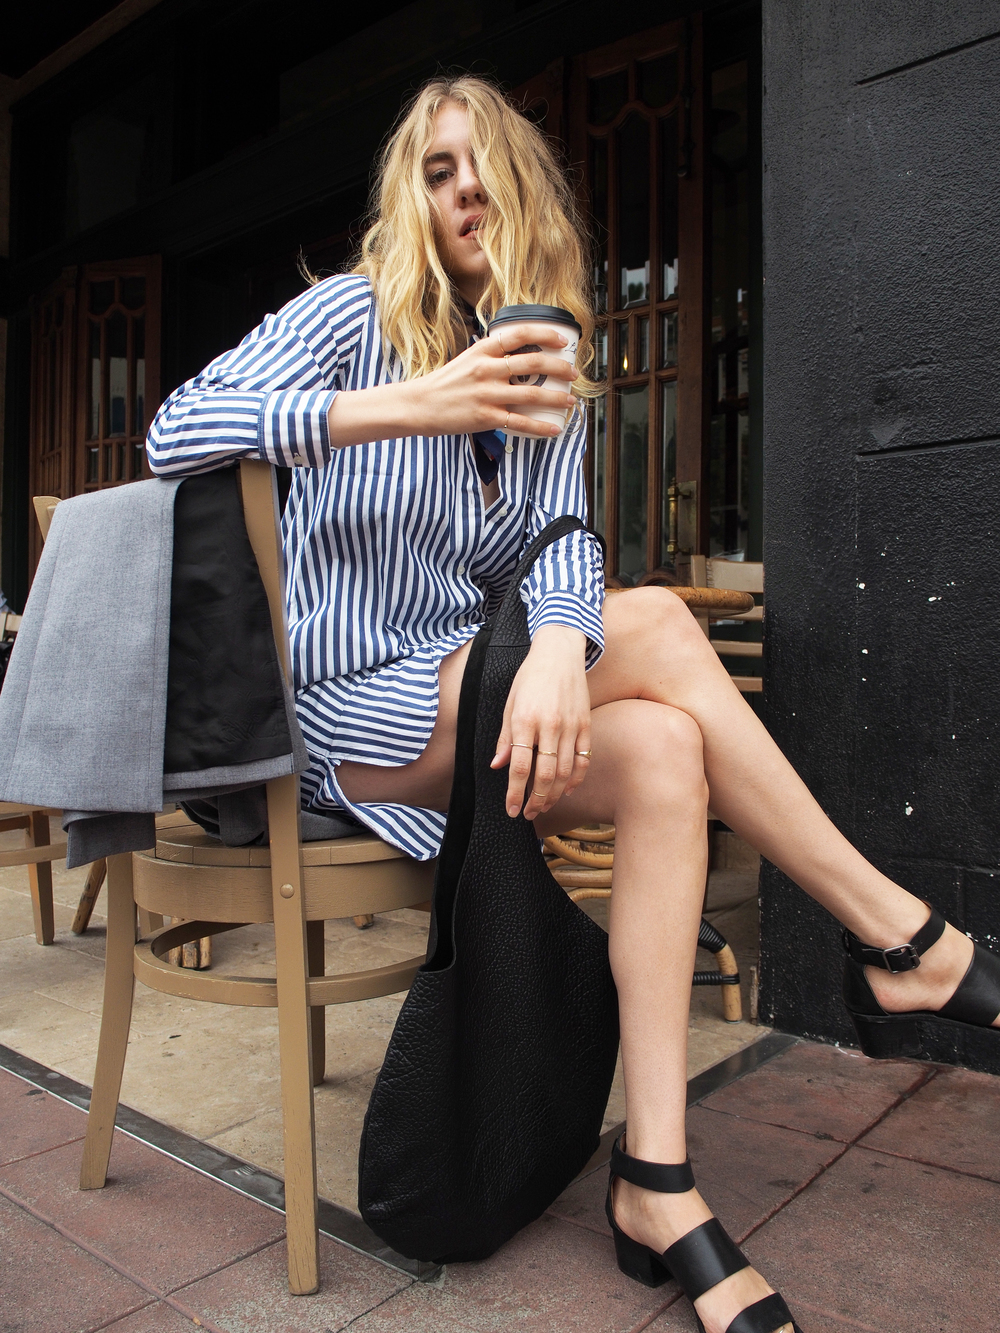 Everlane Striped Poplin Shirt Dress Two Penny Blue Vest MeChar Tote Madewell Sandals Coffee Street Style Look x Taylr Anne